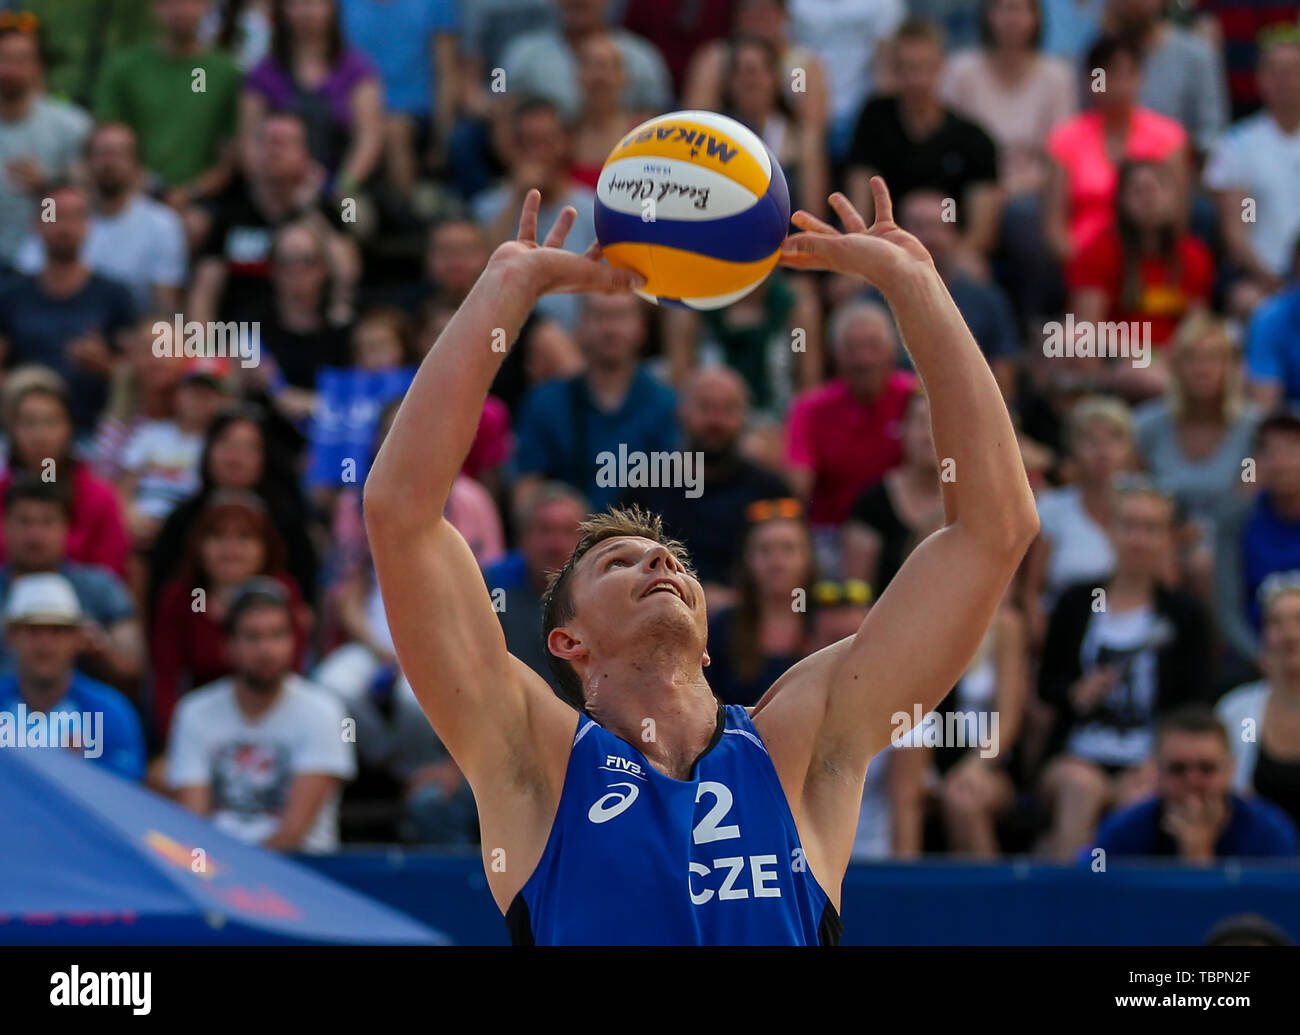 Ostrava, Czech Republic. 01st June, 2019. David Schweiner (Czech) in action during the four-star J&T Banka Ostrava Beach Open 2019, part of the FIVB Beach Volleyball World Tour, in Ostrava, Czech Republic, on July 1, 2019. Credit: Vladimir Prycek/CTK Photo/Alamy Live News Stock Photo